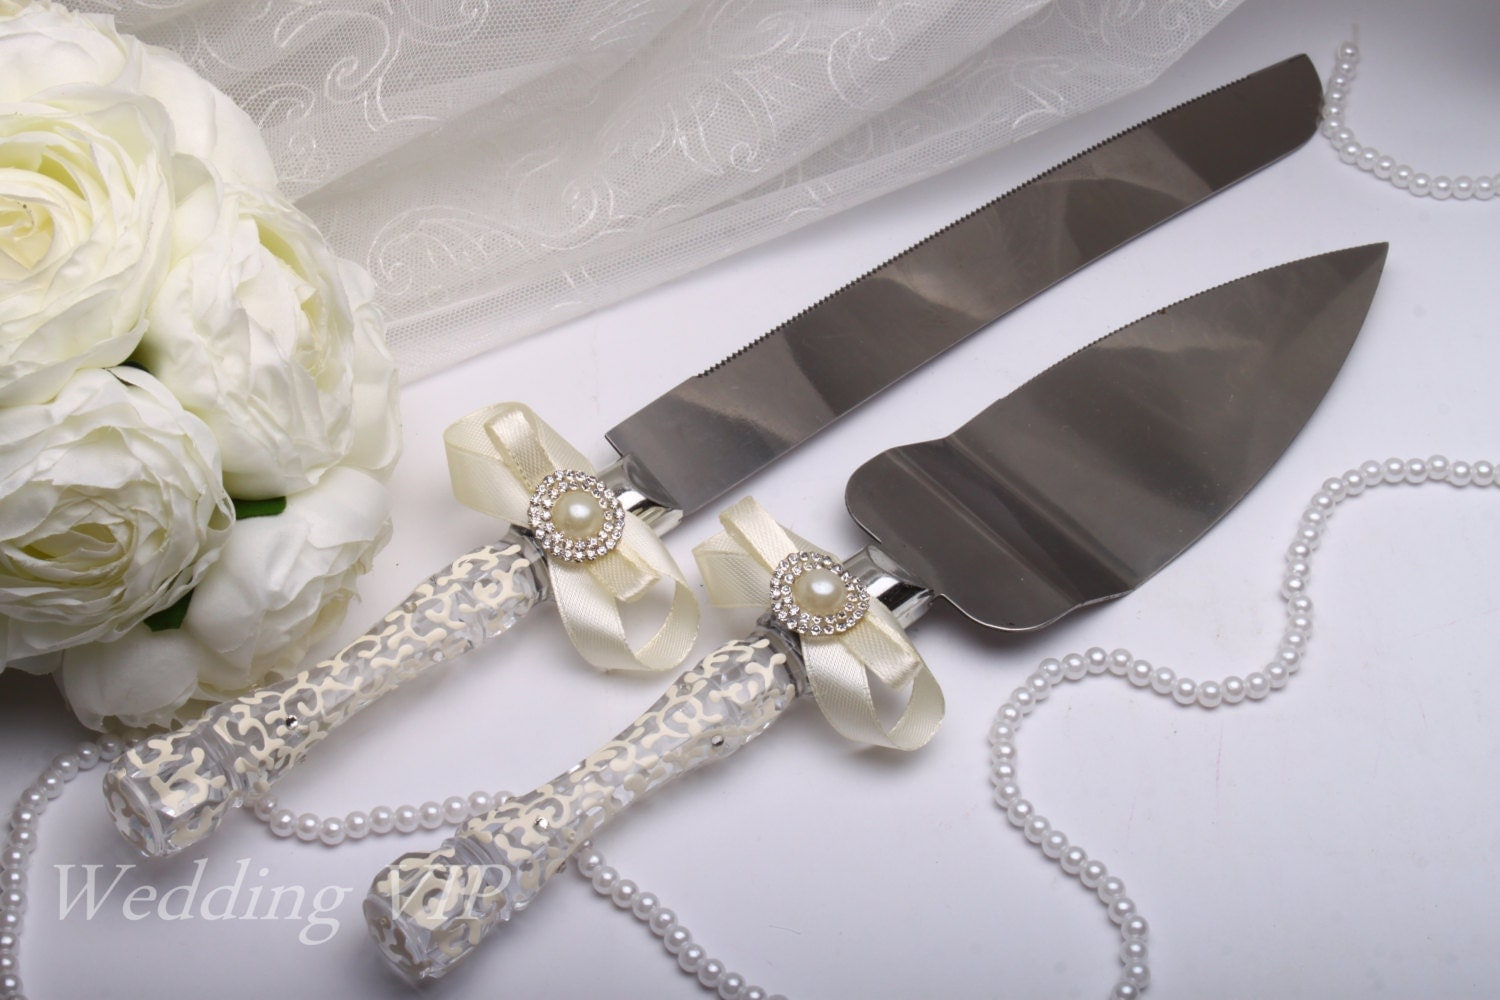 wedding cake cutters wedding cake knife wedding cake cutting set cake by vizzara 8610